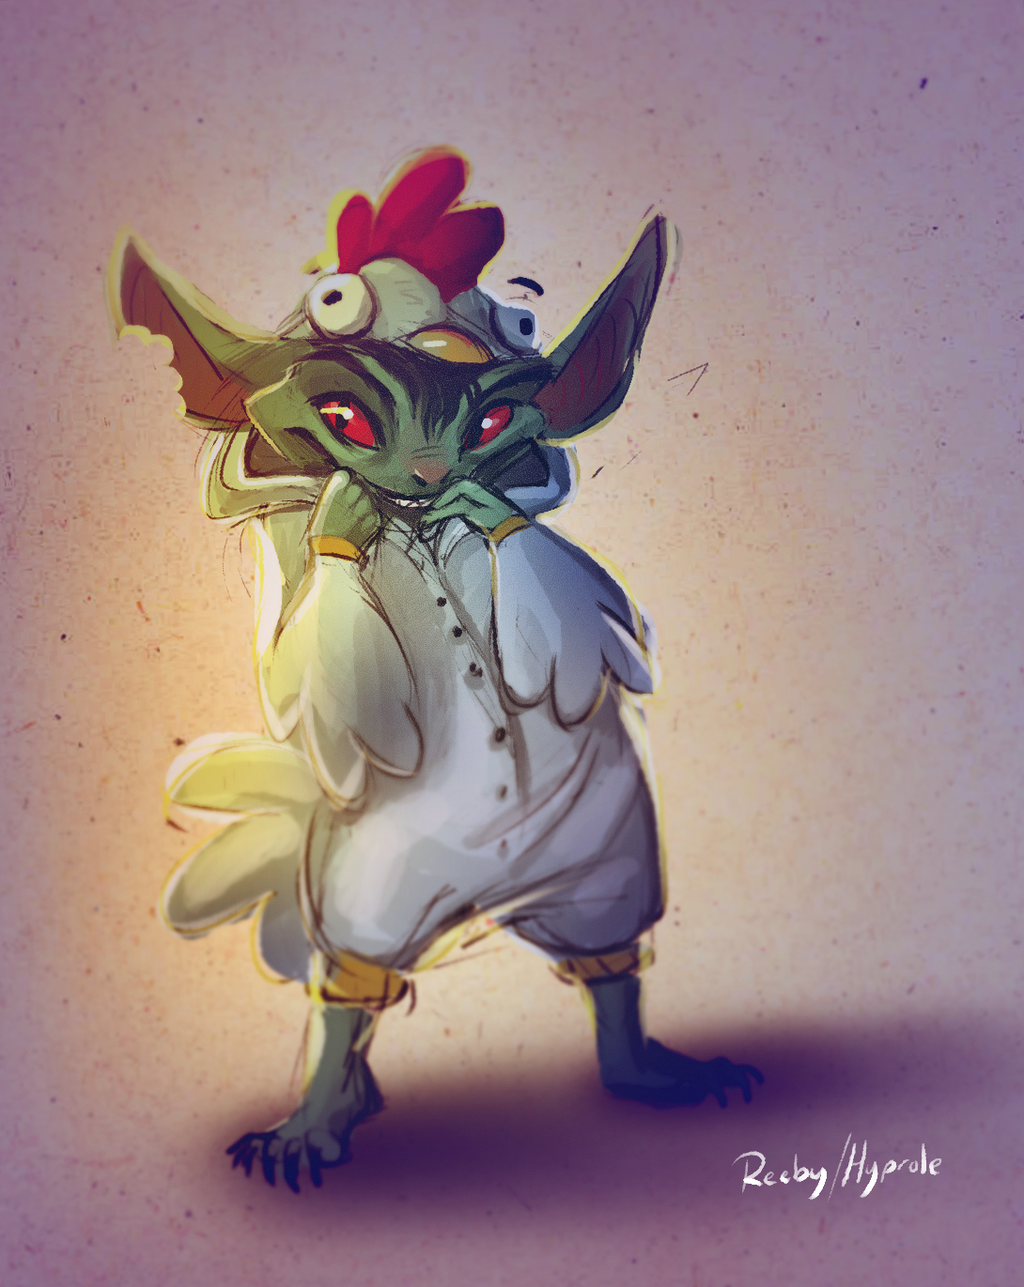 Most recent image: The most terrifying chicken